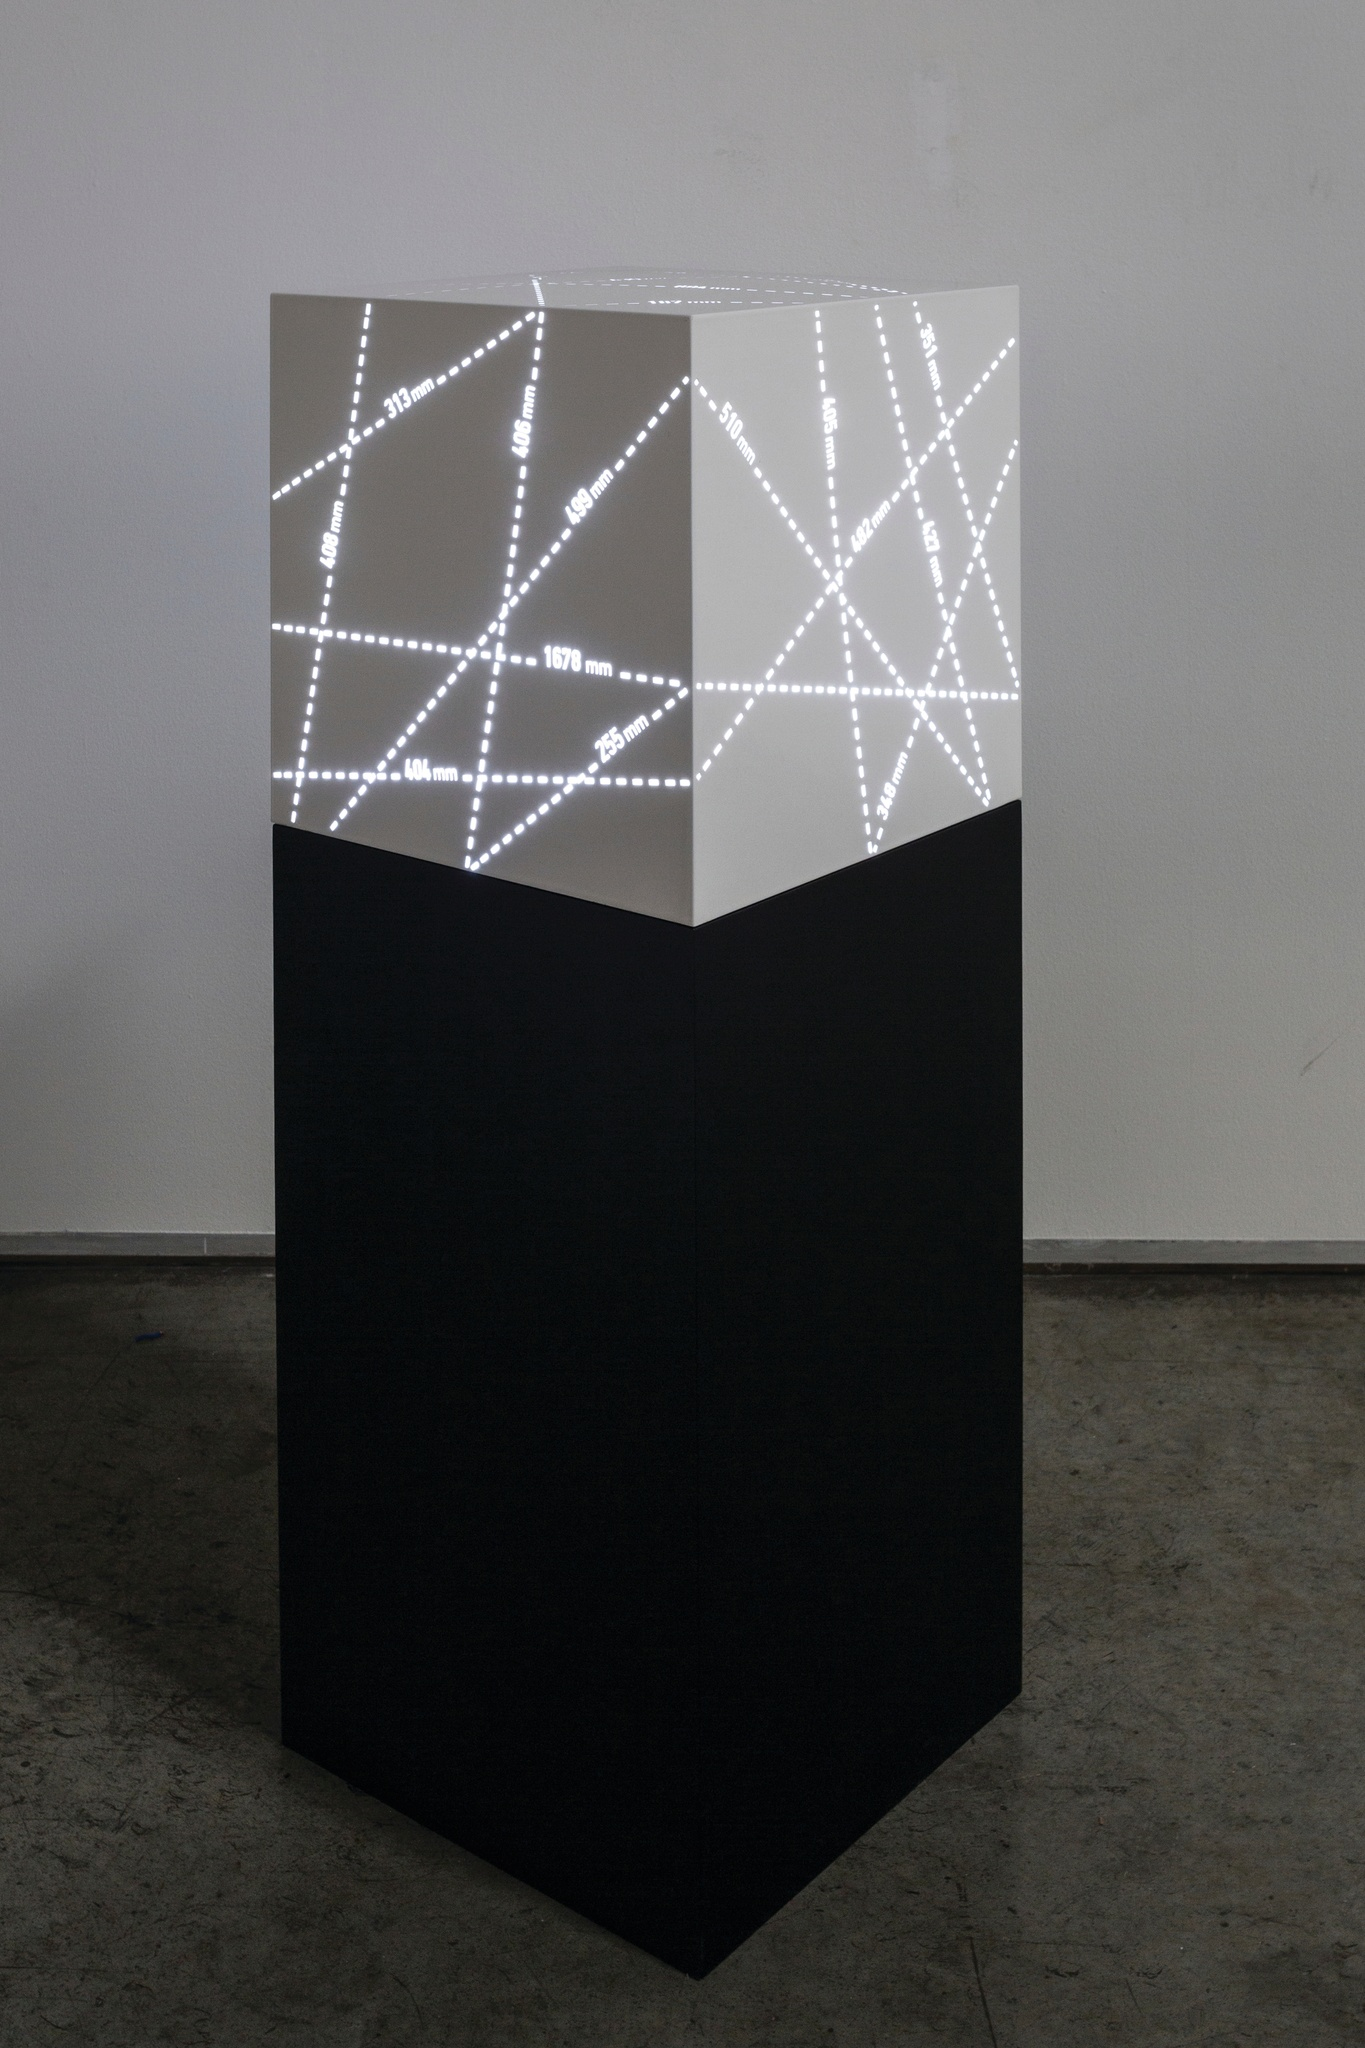 Mohammed Kazem.   Measuring , 2015. Painted stainless steel, acrylic and led lights, 40 x 40 x 40 cm. Courtesy the artist and Gallery Isabelle van den Eynde.